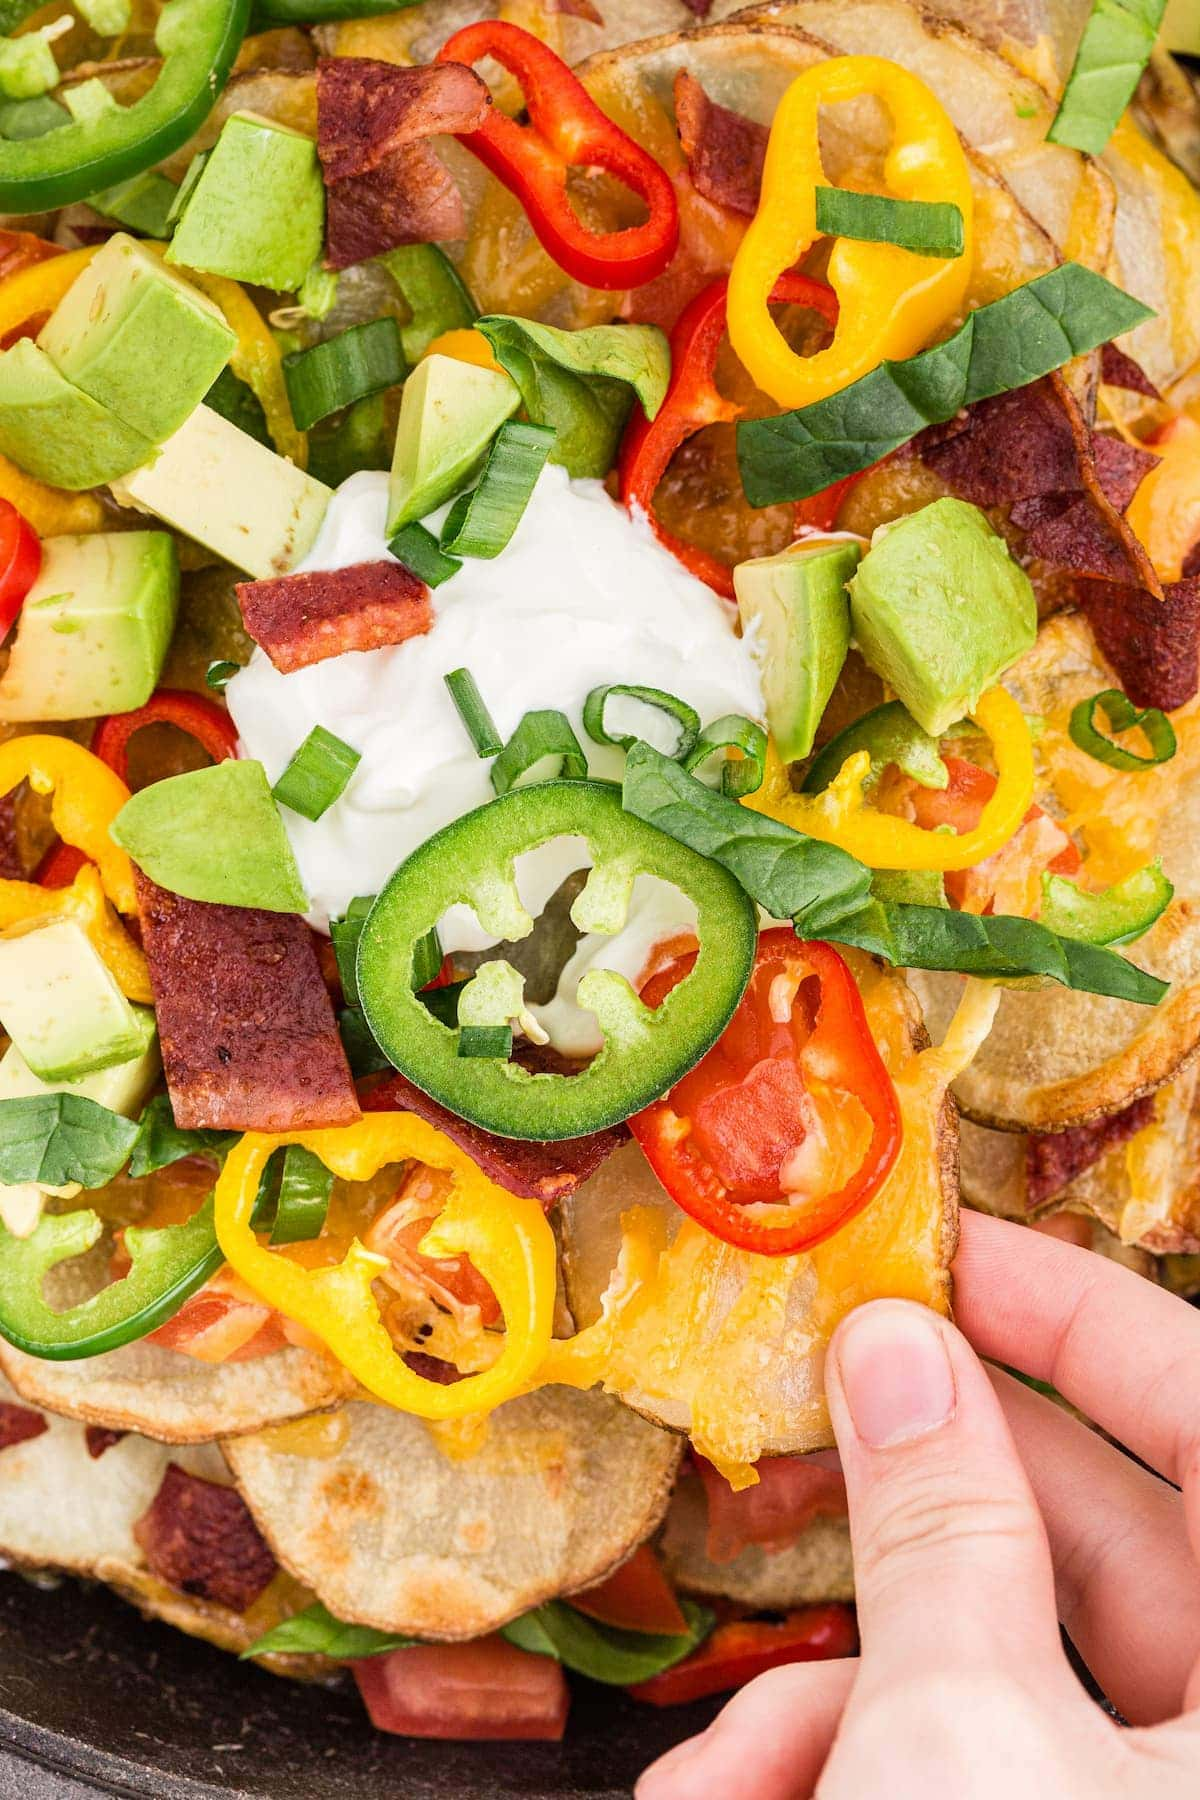 Baked Irish nachos with bell peppers, jalapenos, tomatoes, bacon, and sour cream on baked potato chips.